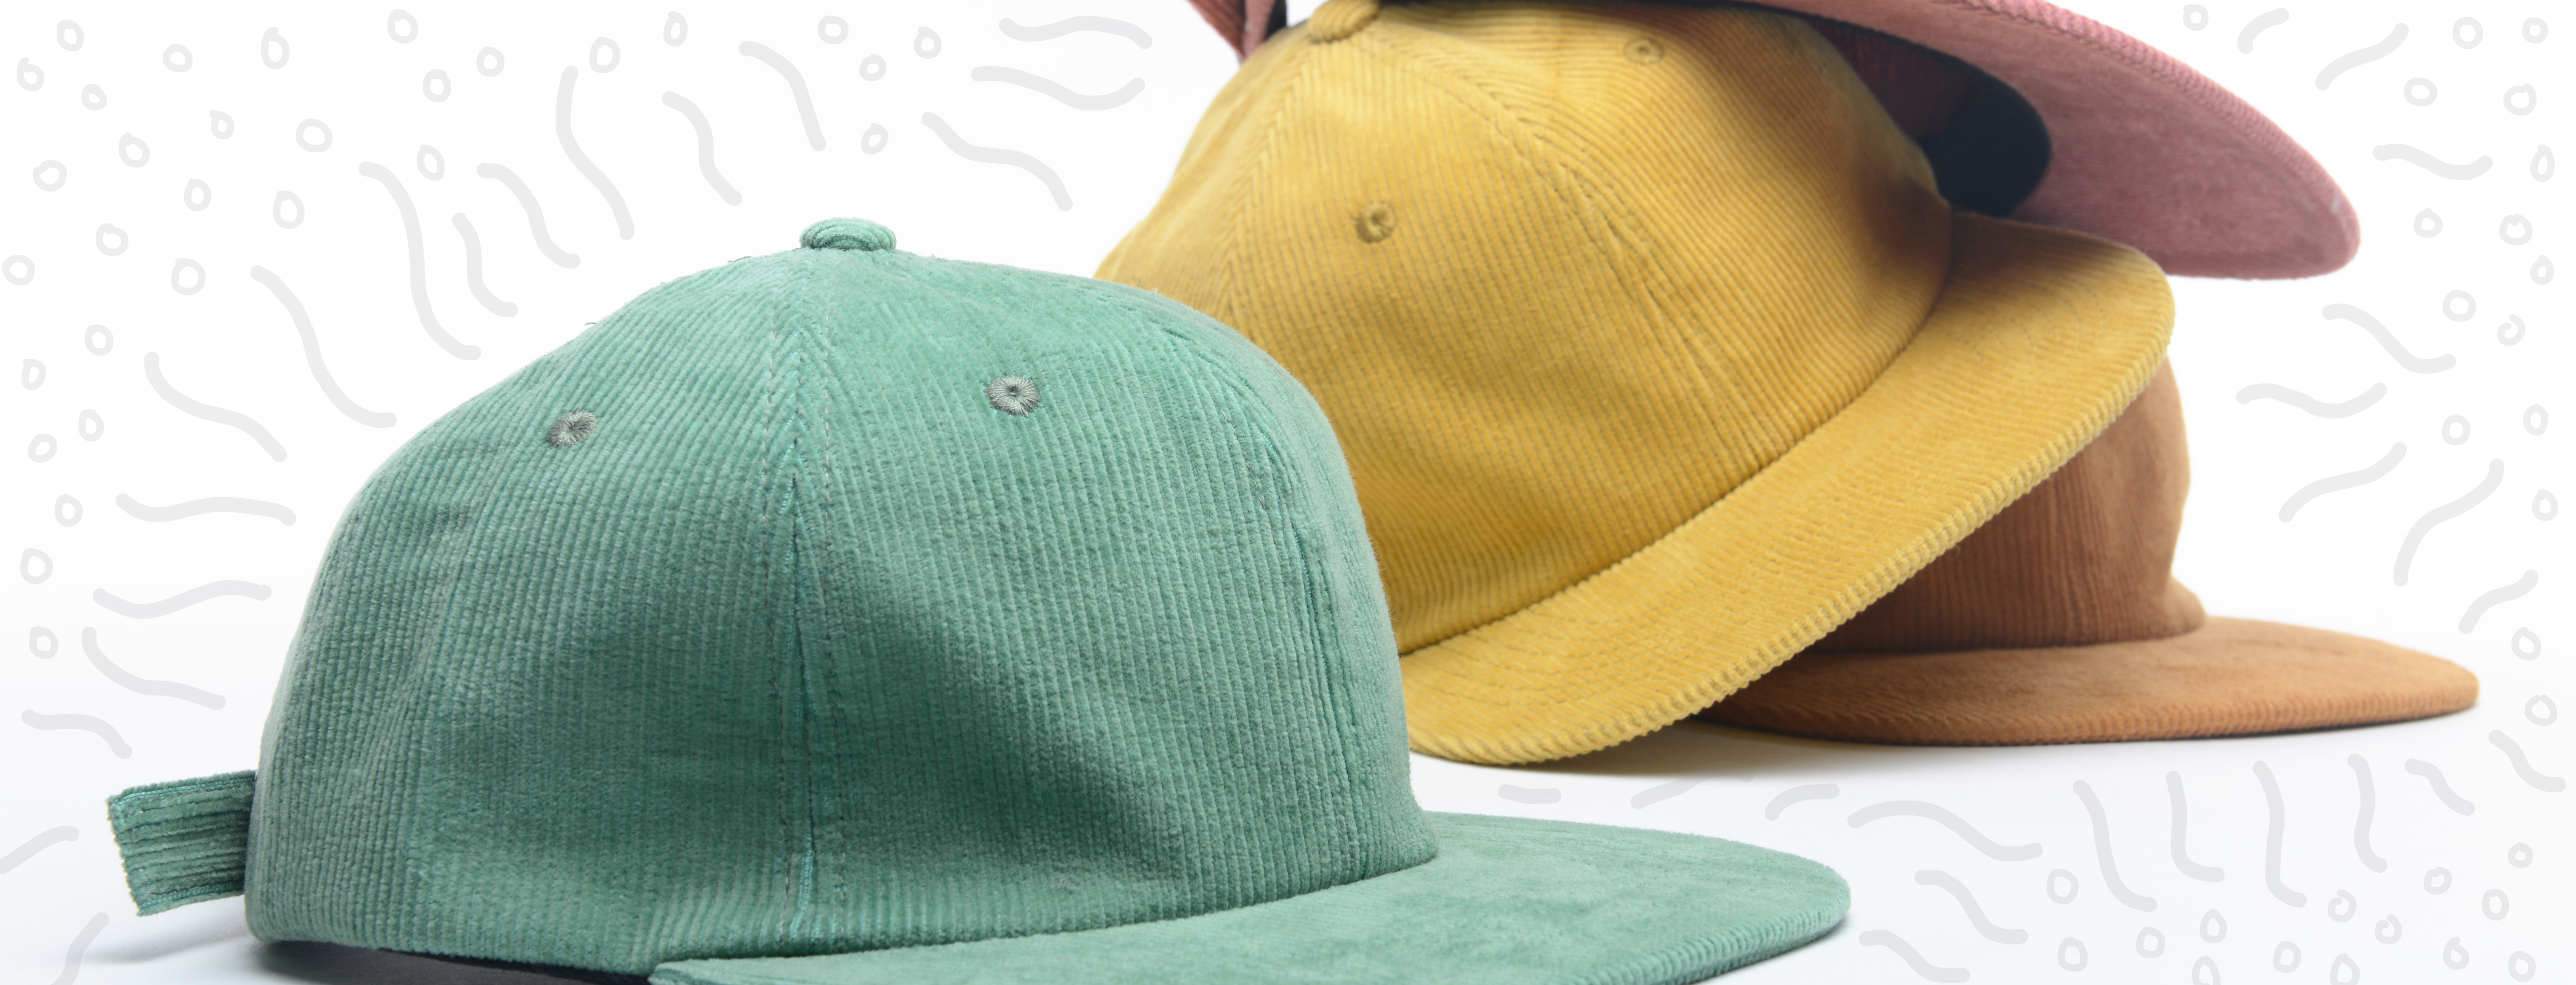 Main Differences Between Beanies and Toboggan Hats - image Delusion-Web-Banner on http://blog.delusionmfg.com